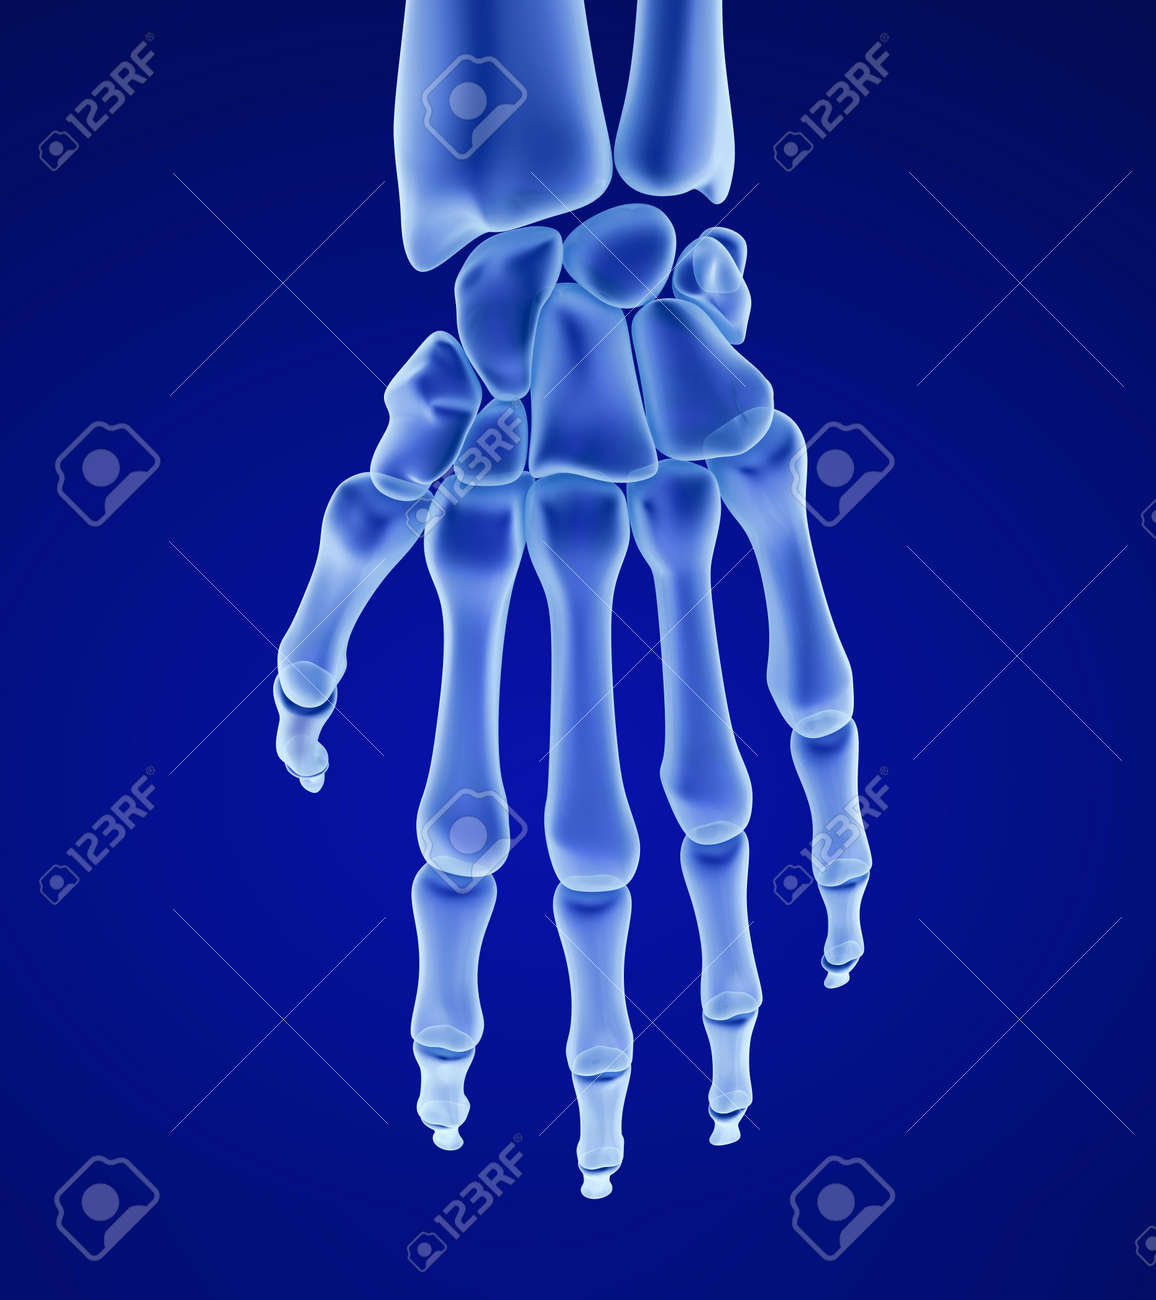 Human Wrist Anatomy. Xray View. Medically Accurate 3D Illustration ...